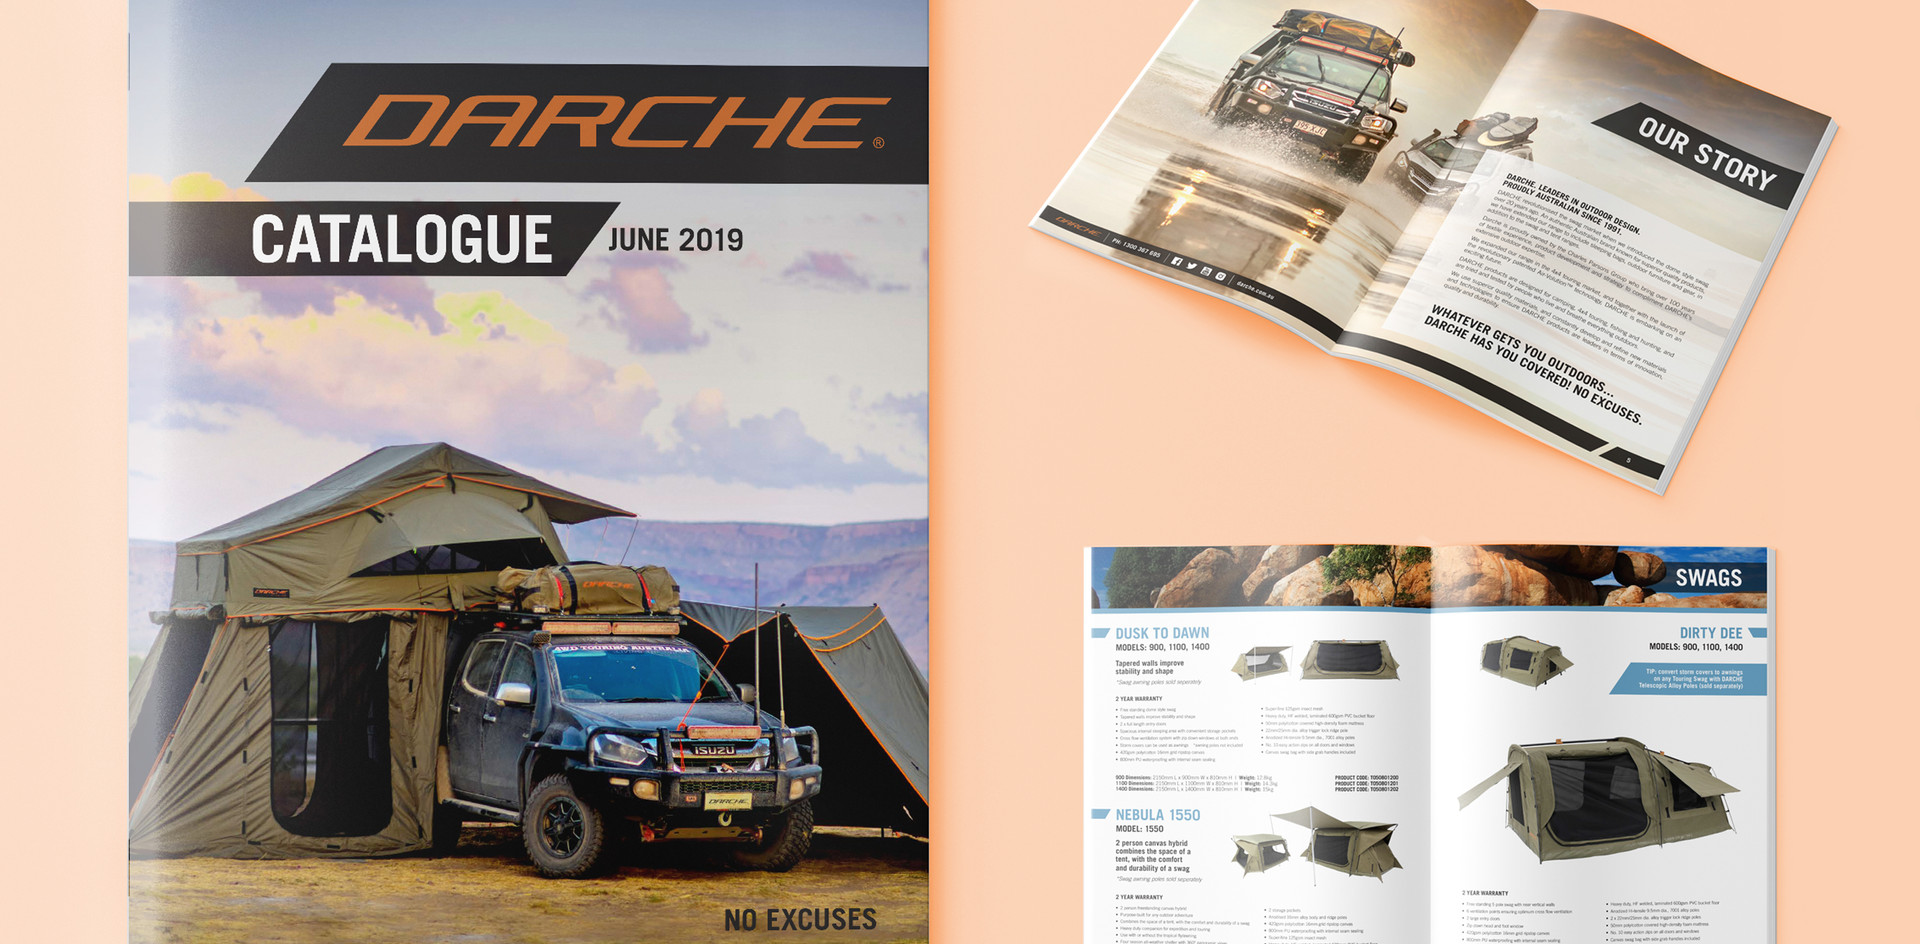 Darche product catalogue